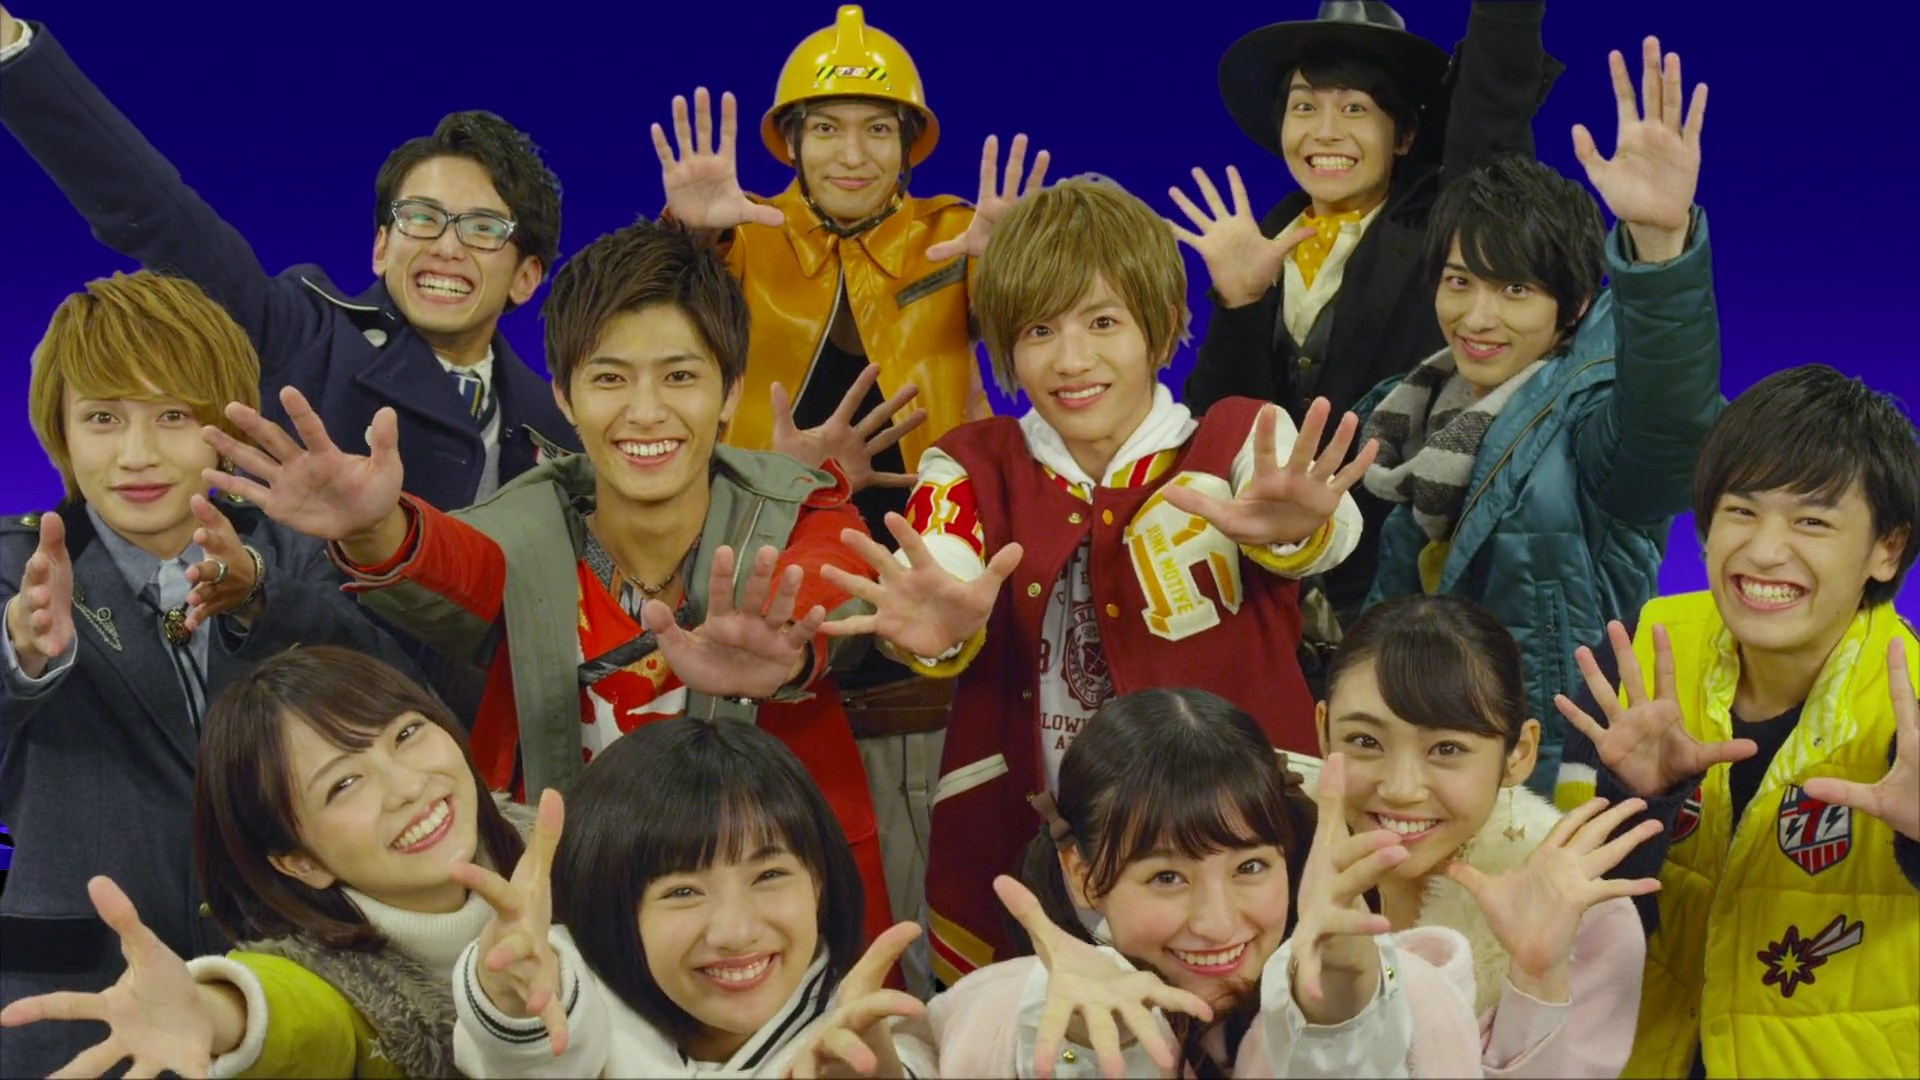 Good Ol' Review: Shuriken Sentai Ninninger vs. ToQger the Movie is Full of Imagination